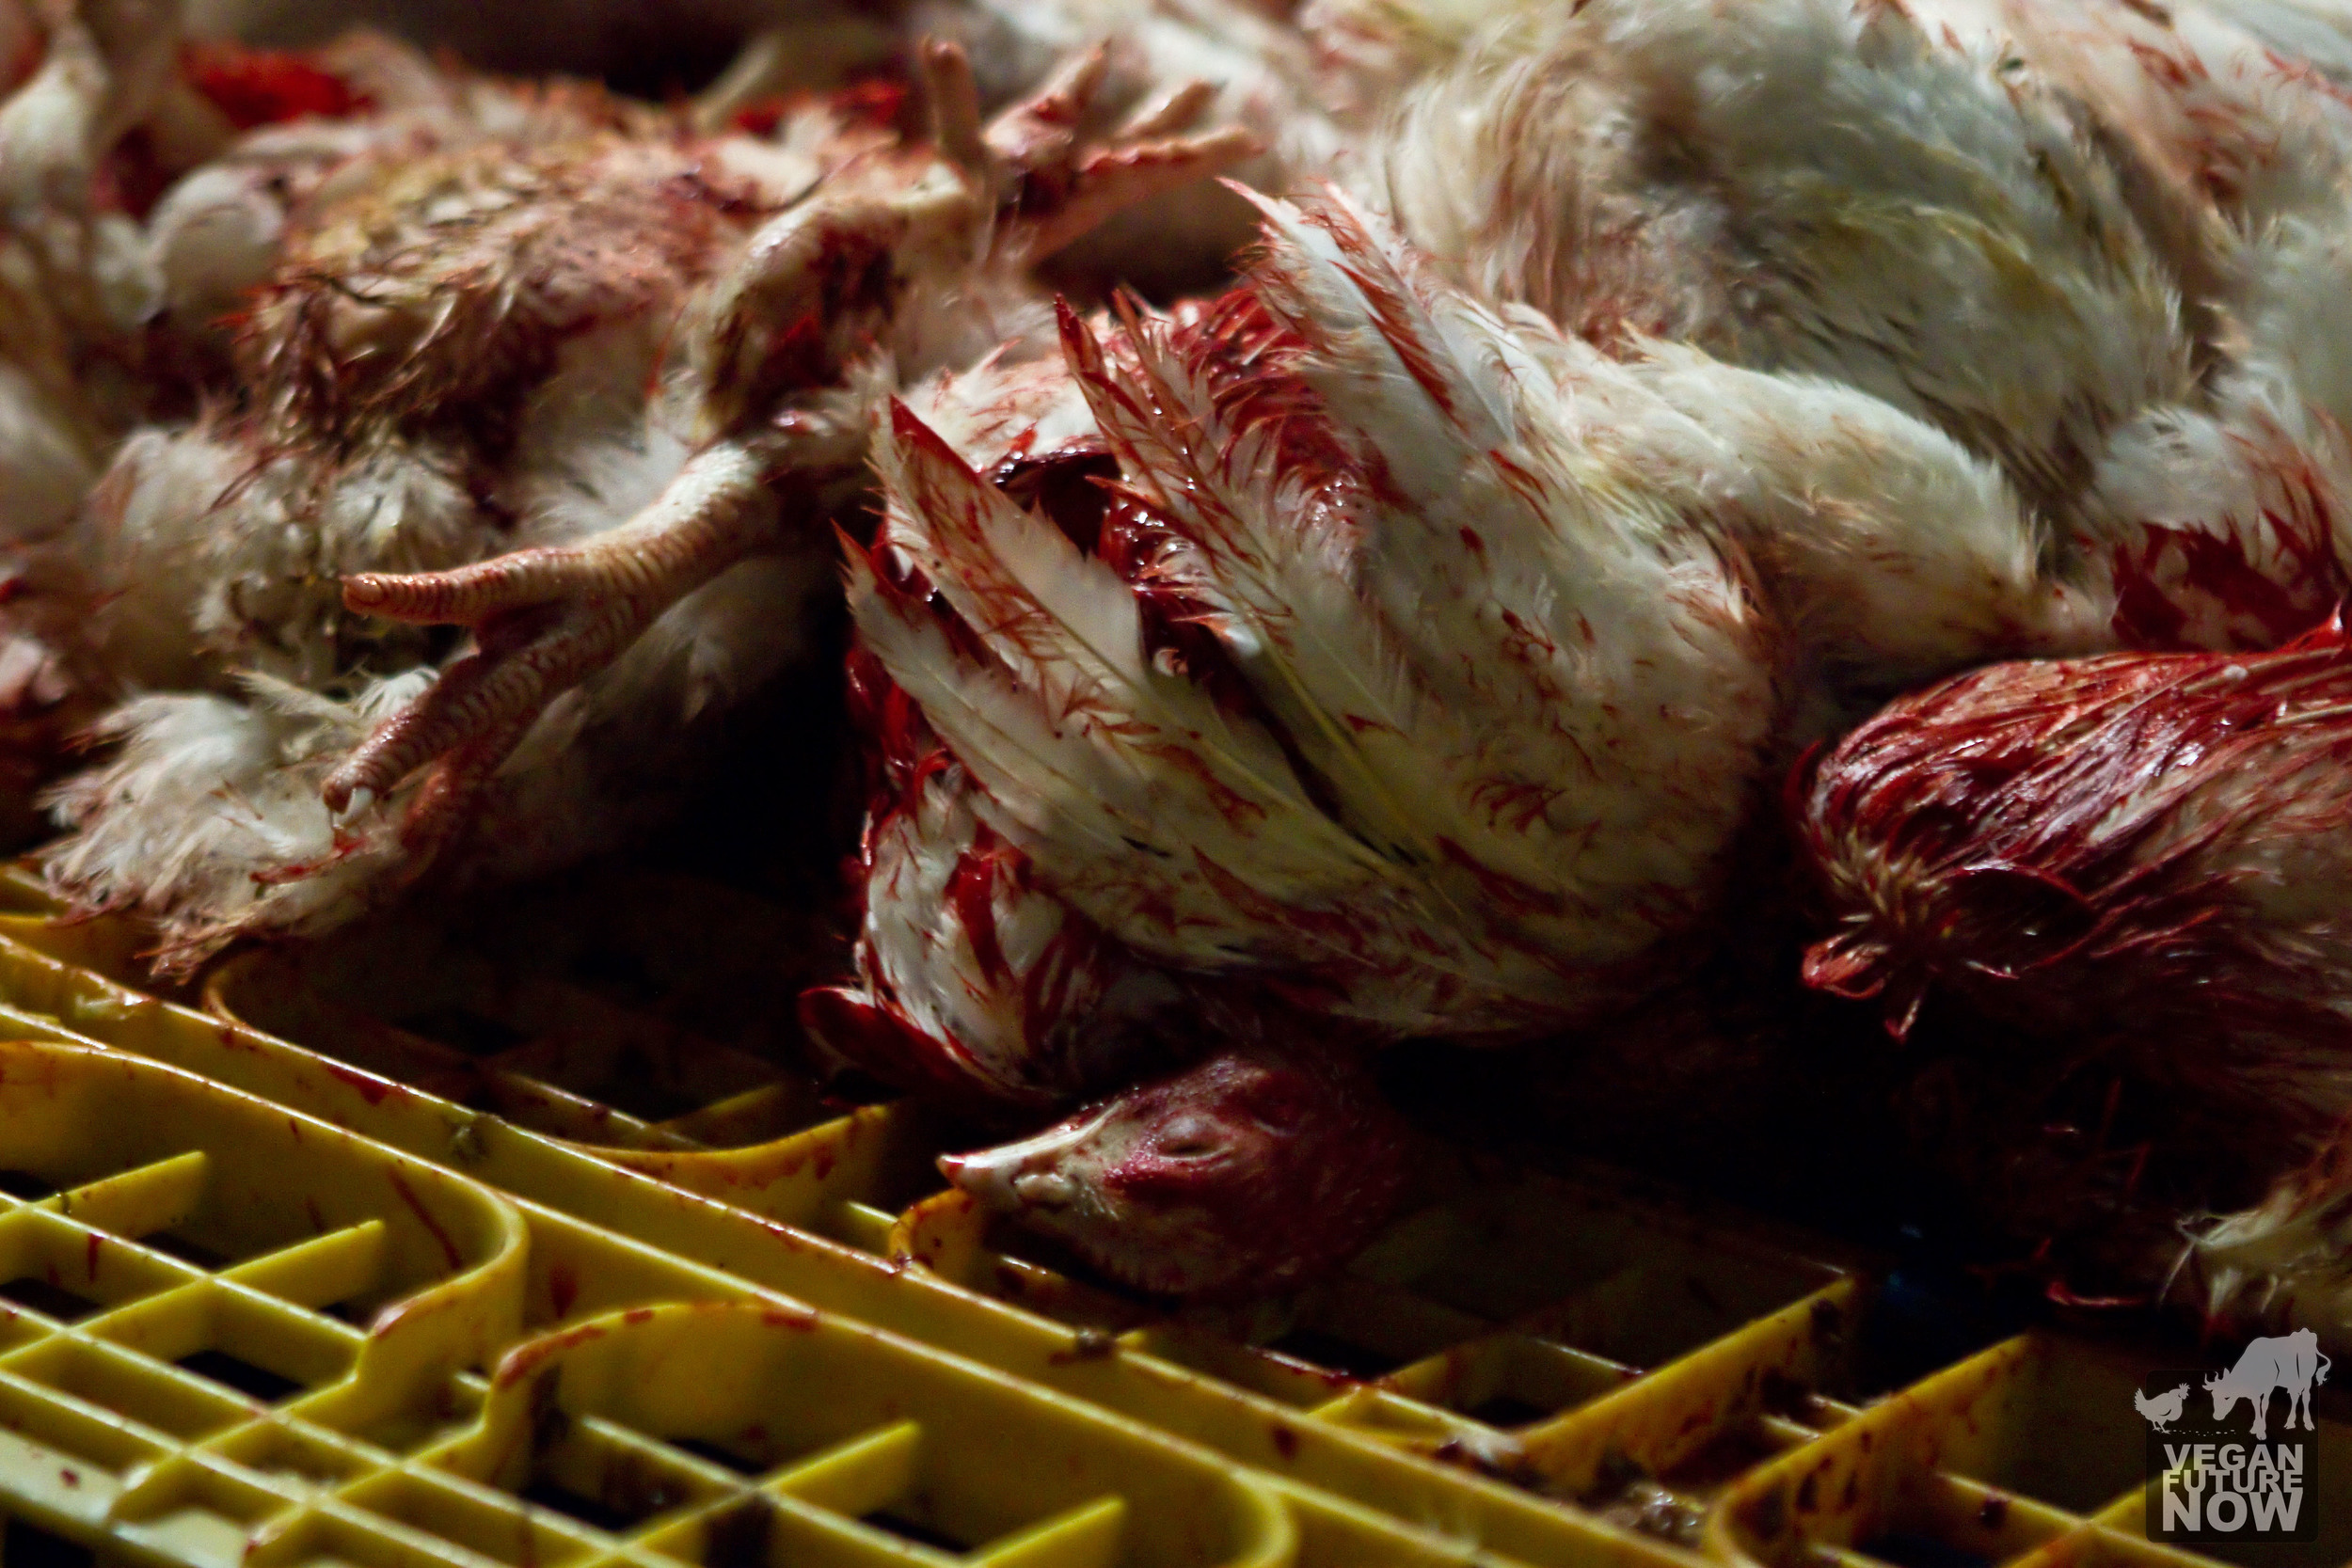 After being slaughtered and drained, the bodies of the victims are thrown onto a pile of crates, the beginning of the disassembly line.